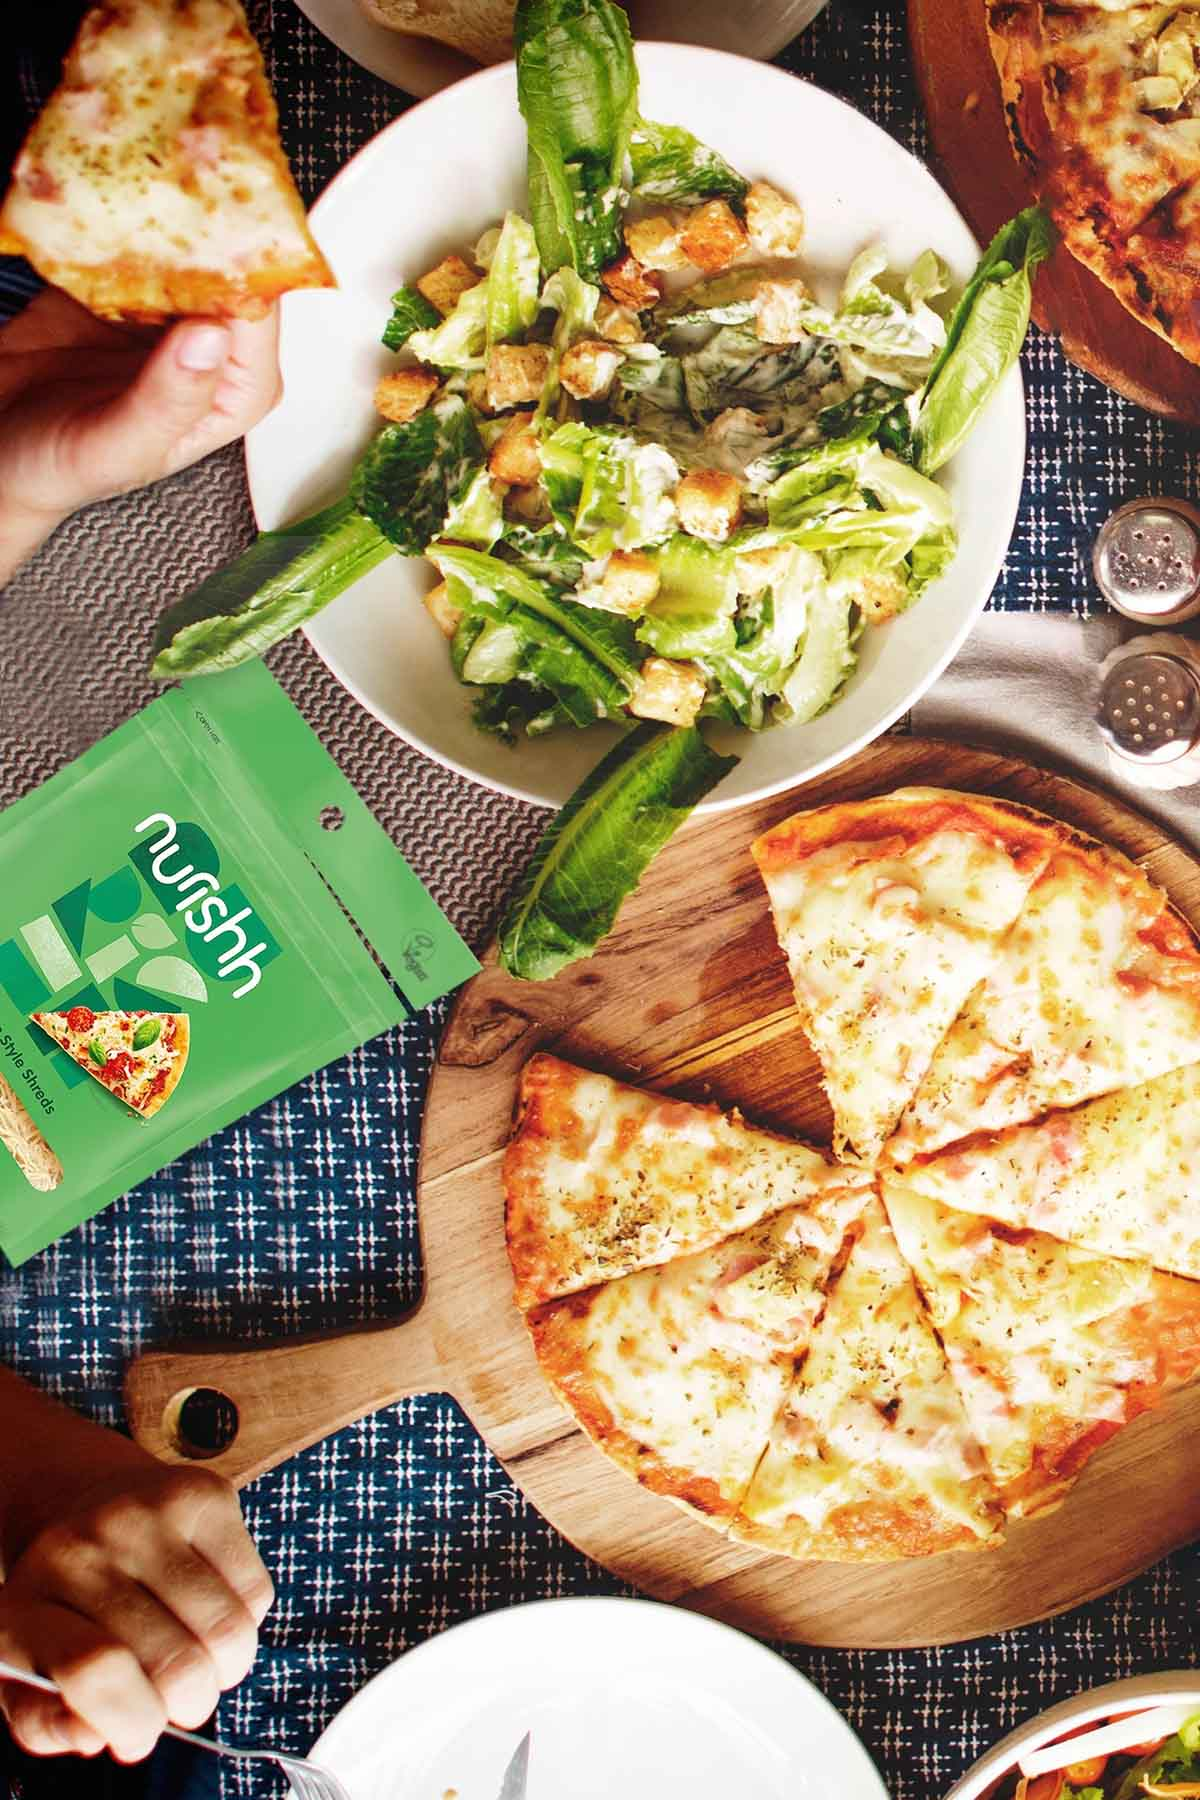 image of a salad and pizza with Nurishh vegan cheese